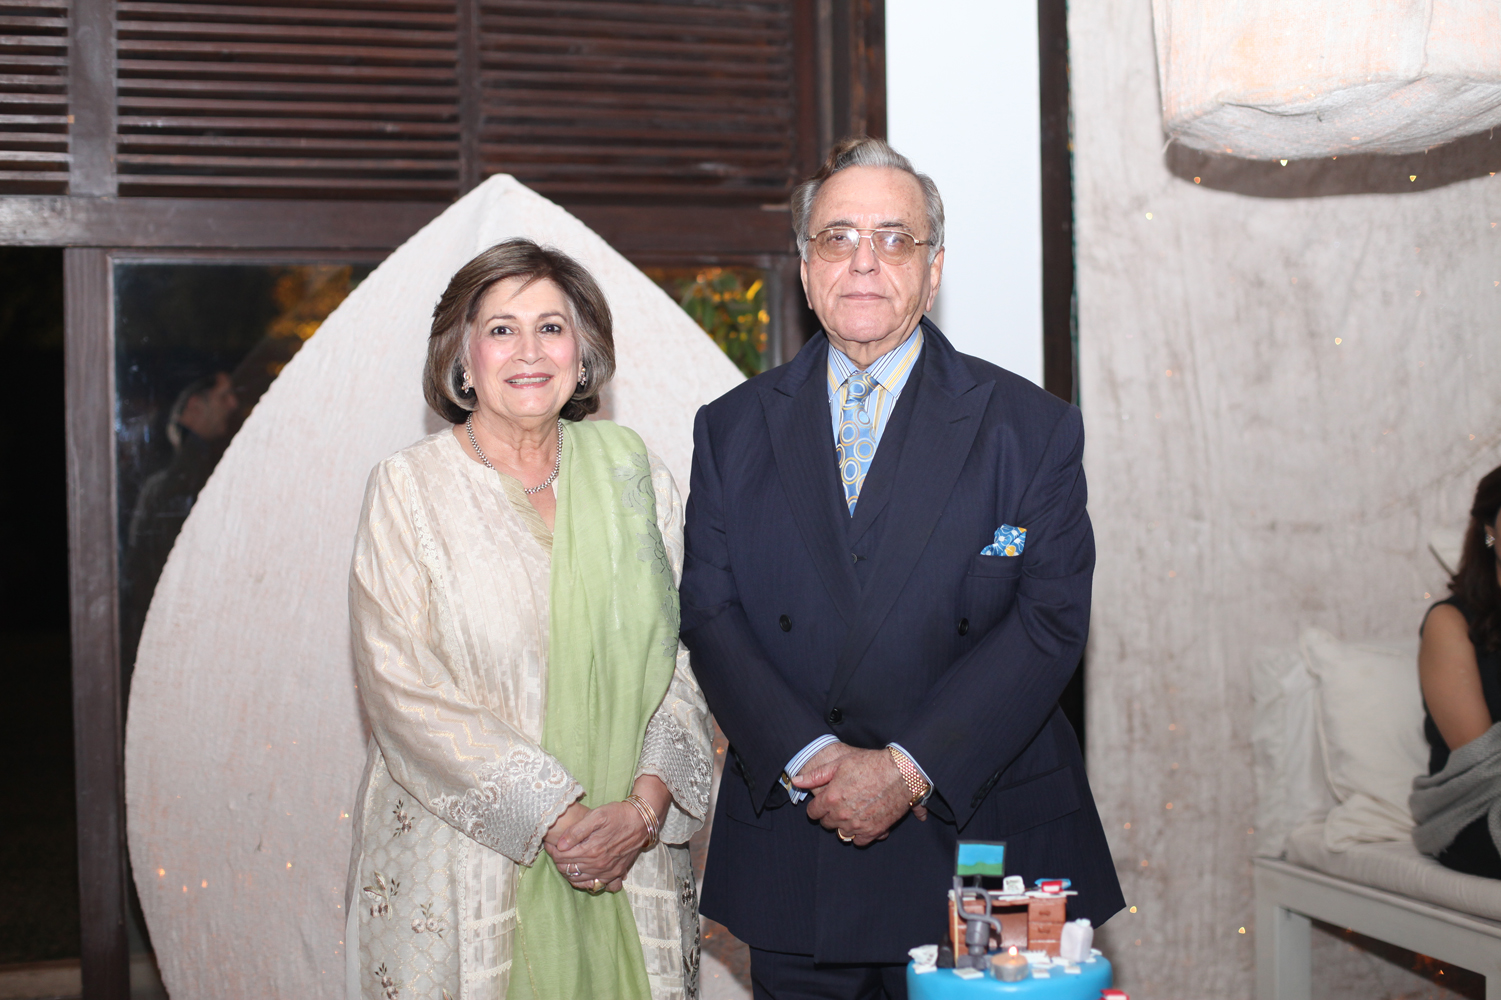 Mr. and Mrs. Mehmood Kasuri